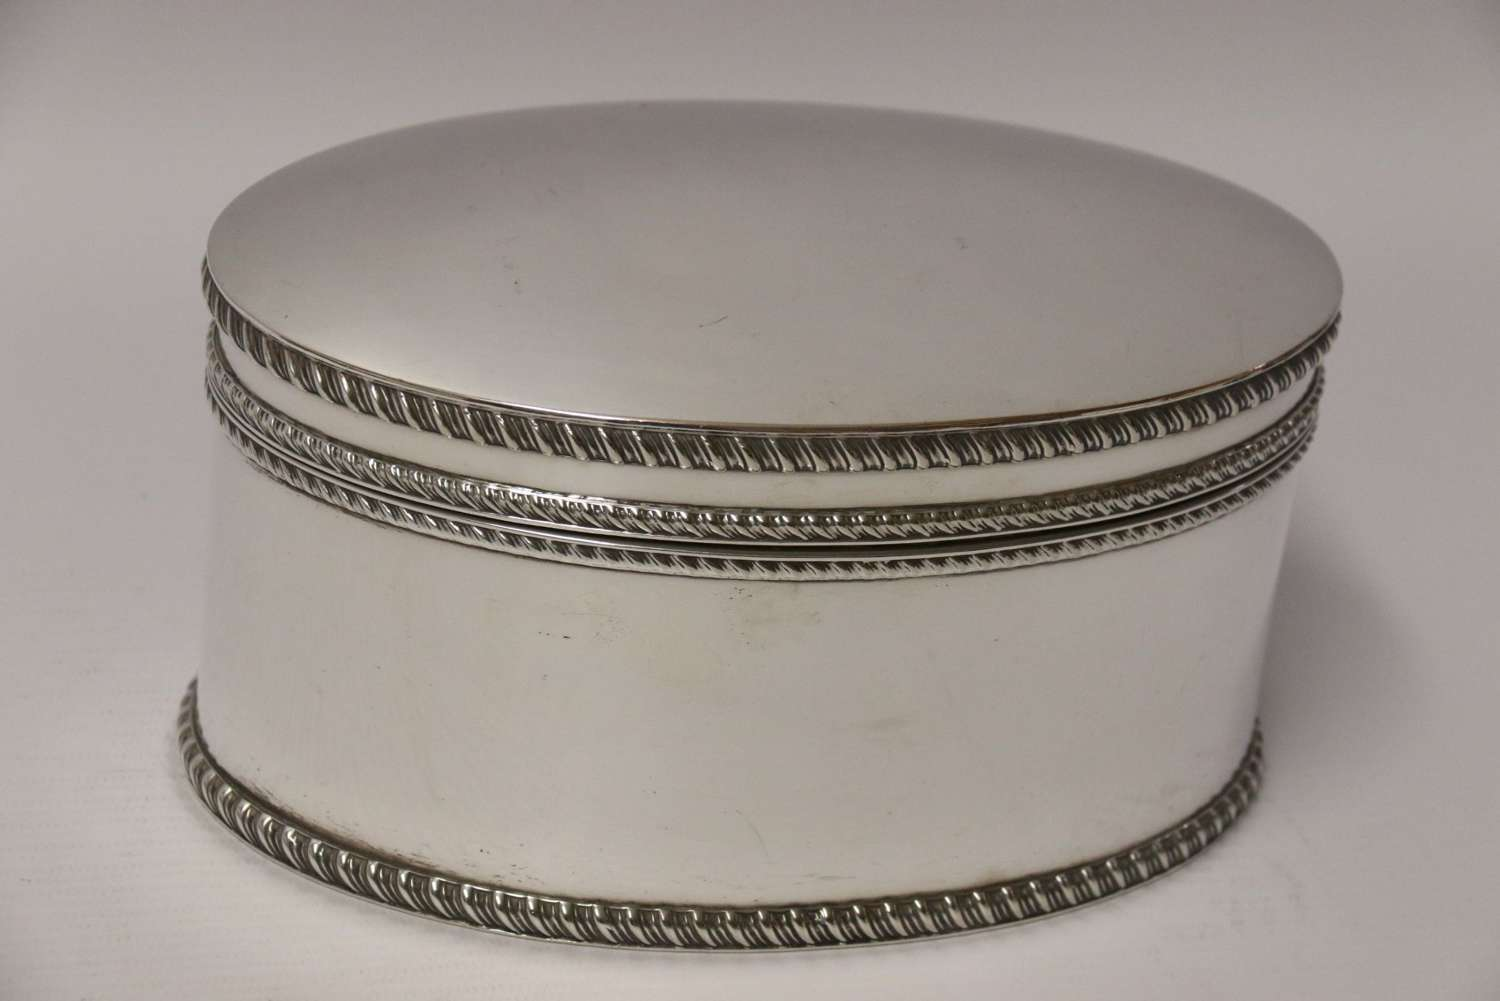 A Superb Quality Silver Plated Domed Oval Box